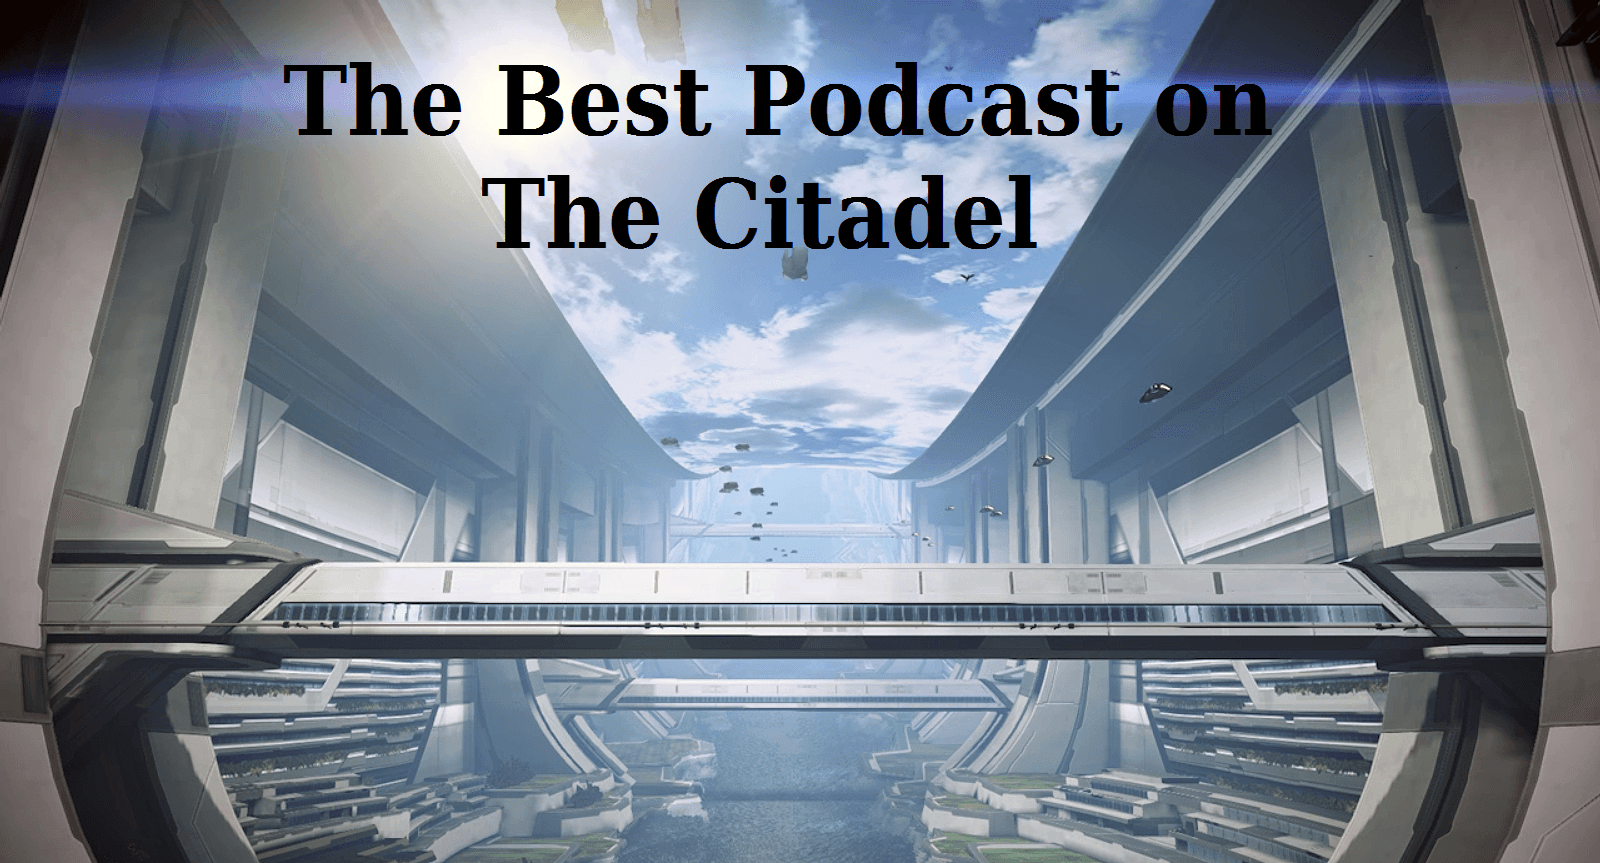 The Best Podcast on the Citadel, Episode 6